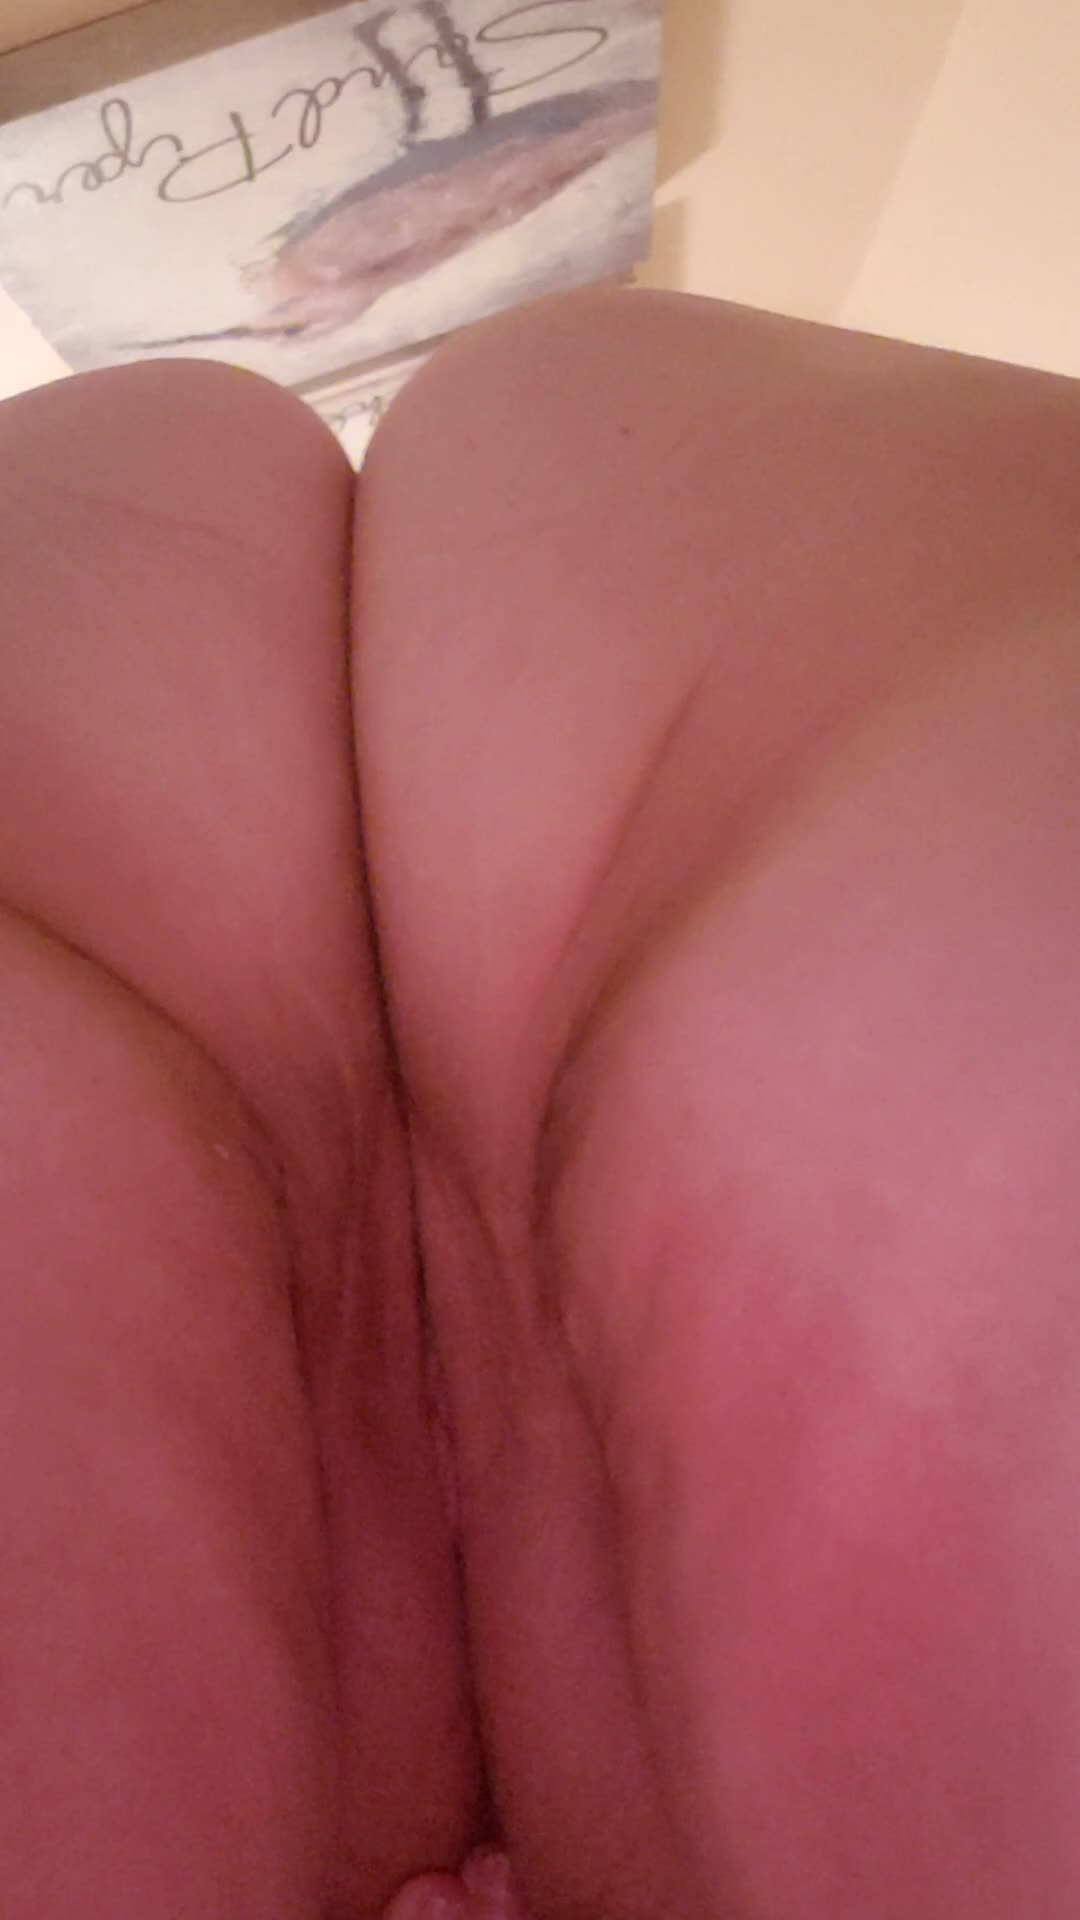 Plump pussy and ass